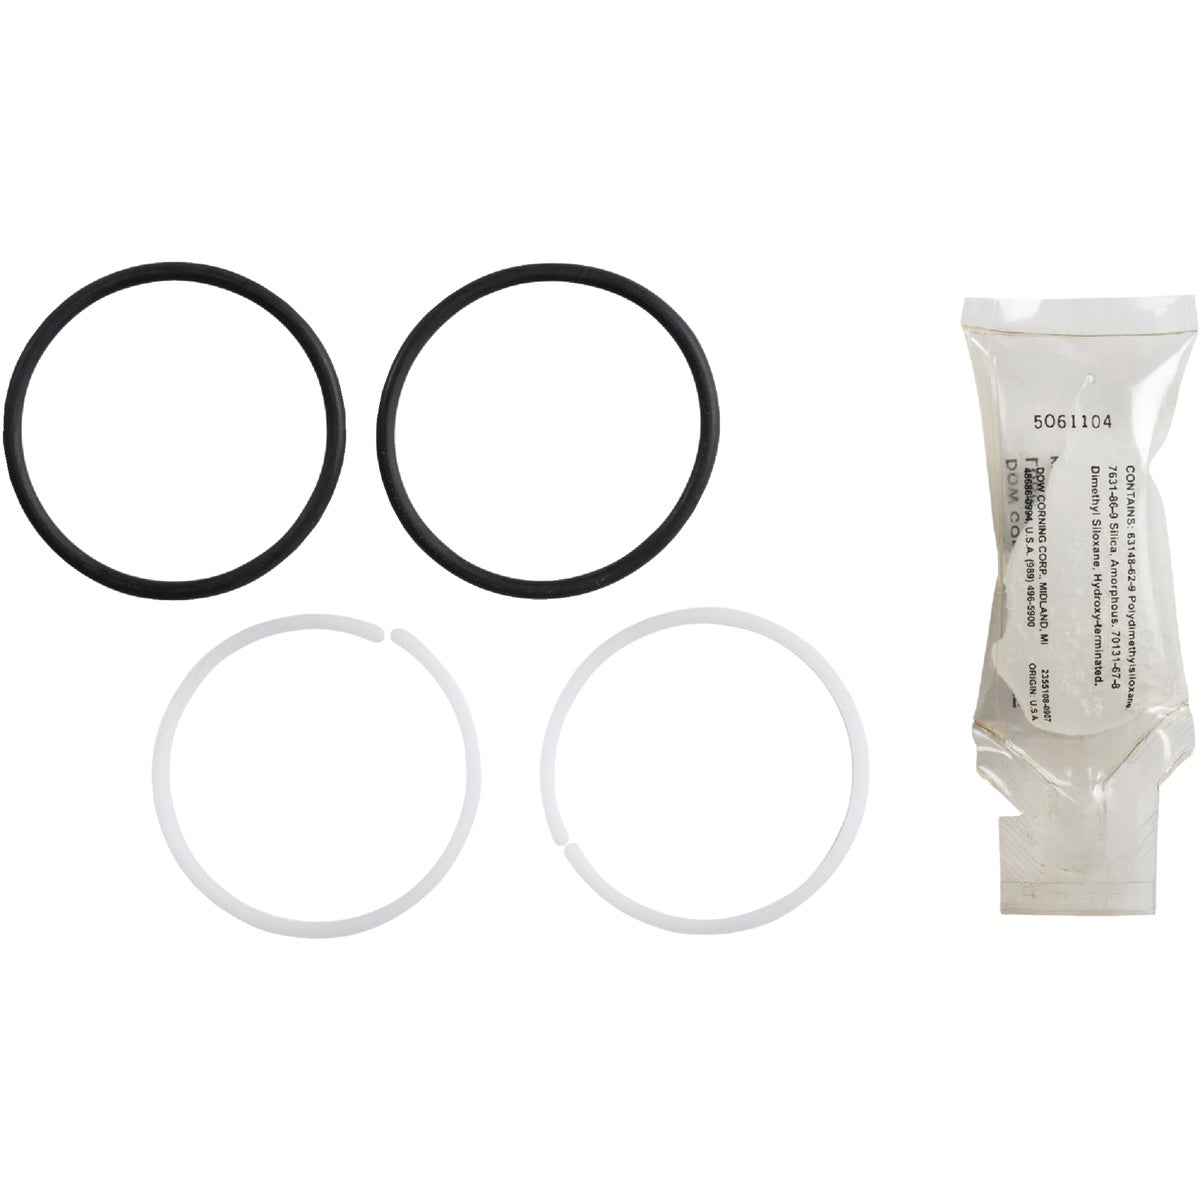 O-RING FAUCET REPAIR KIT - GP30420 by Kohler Co